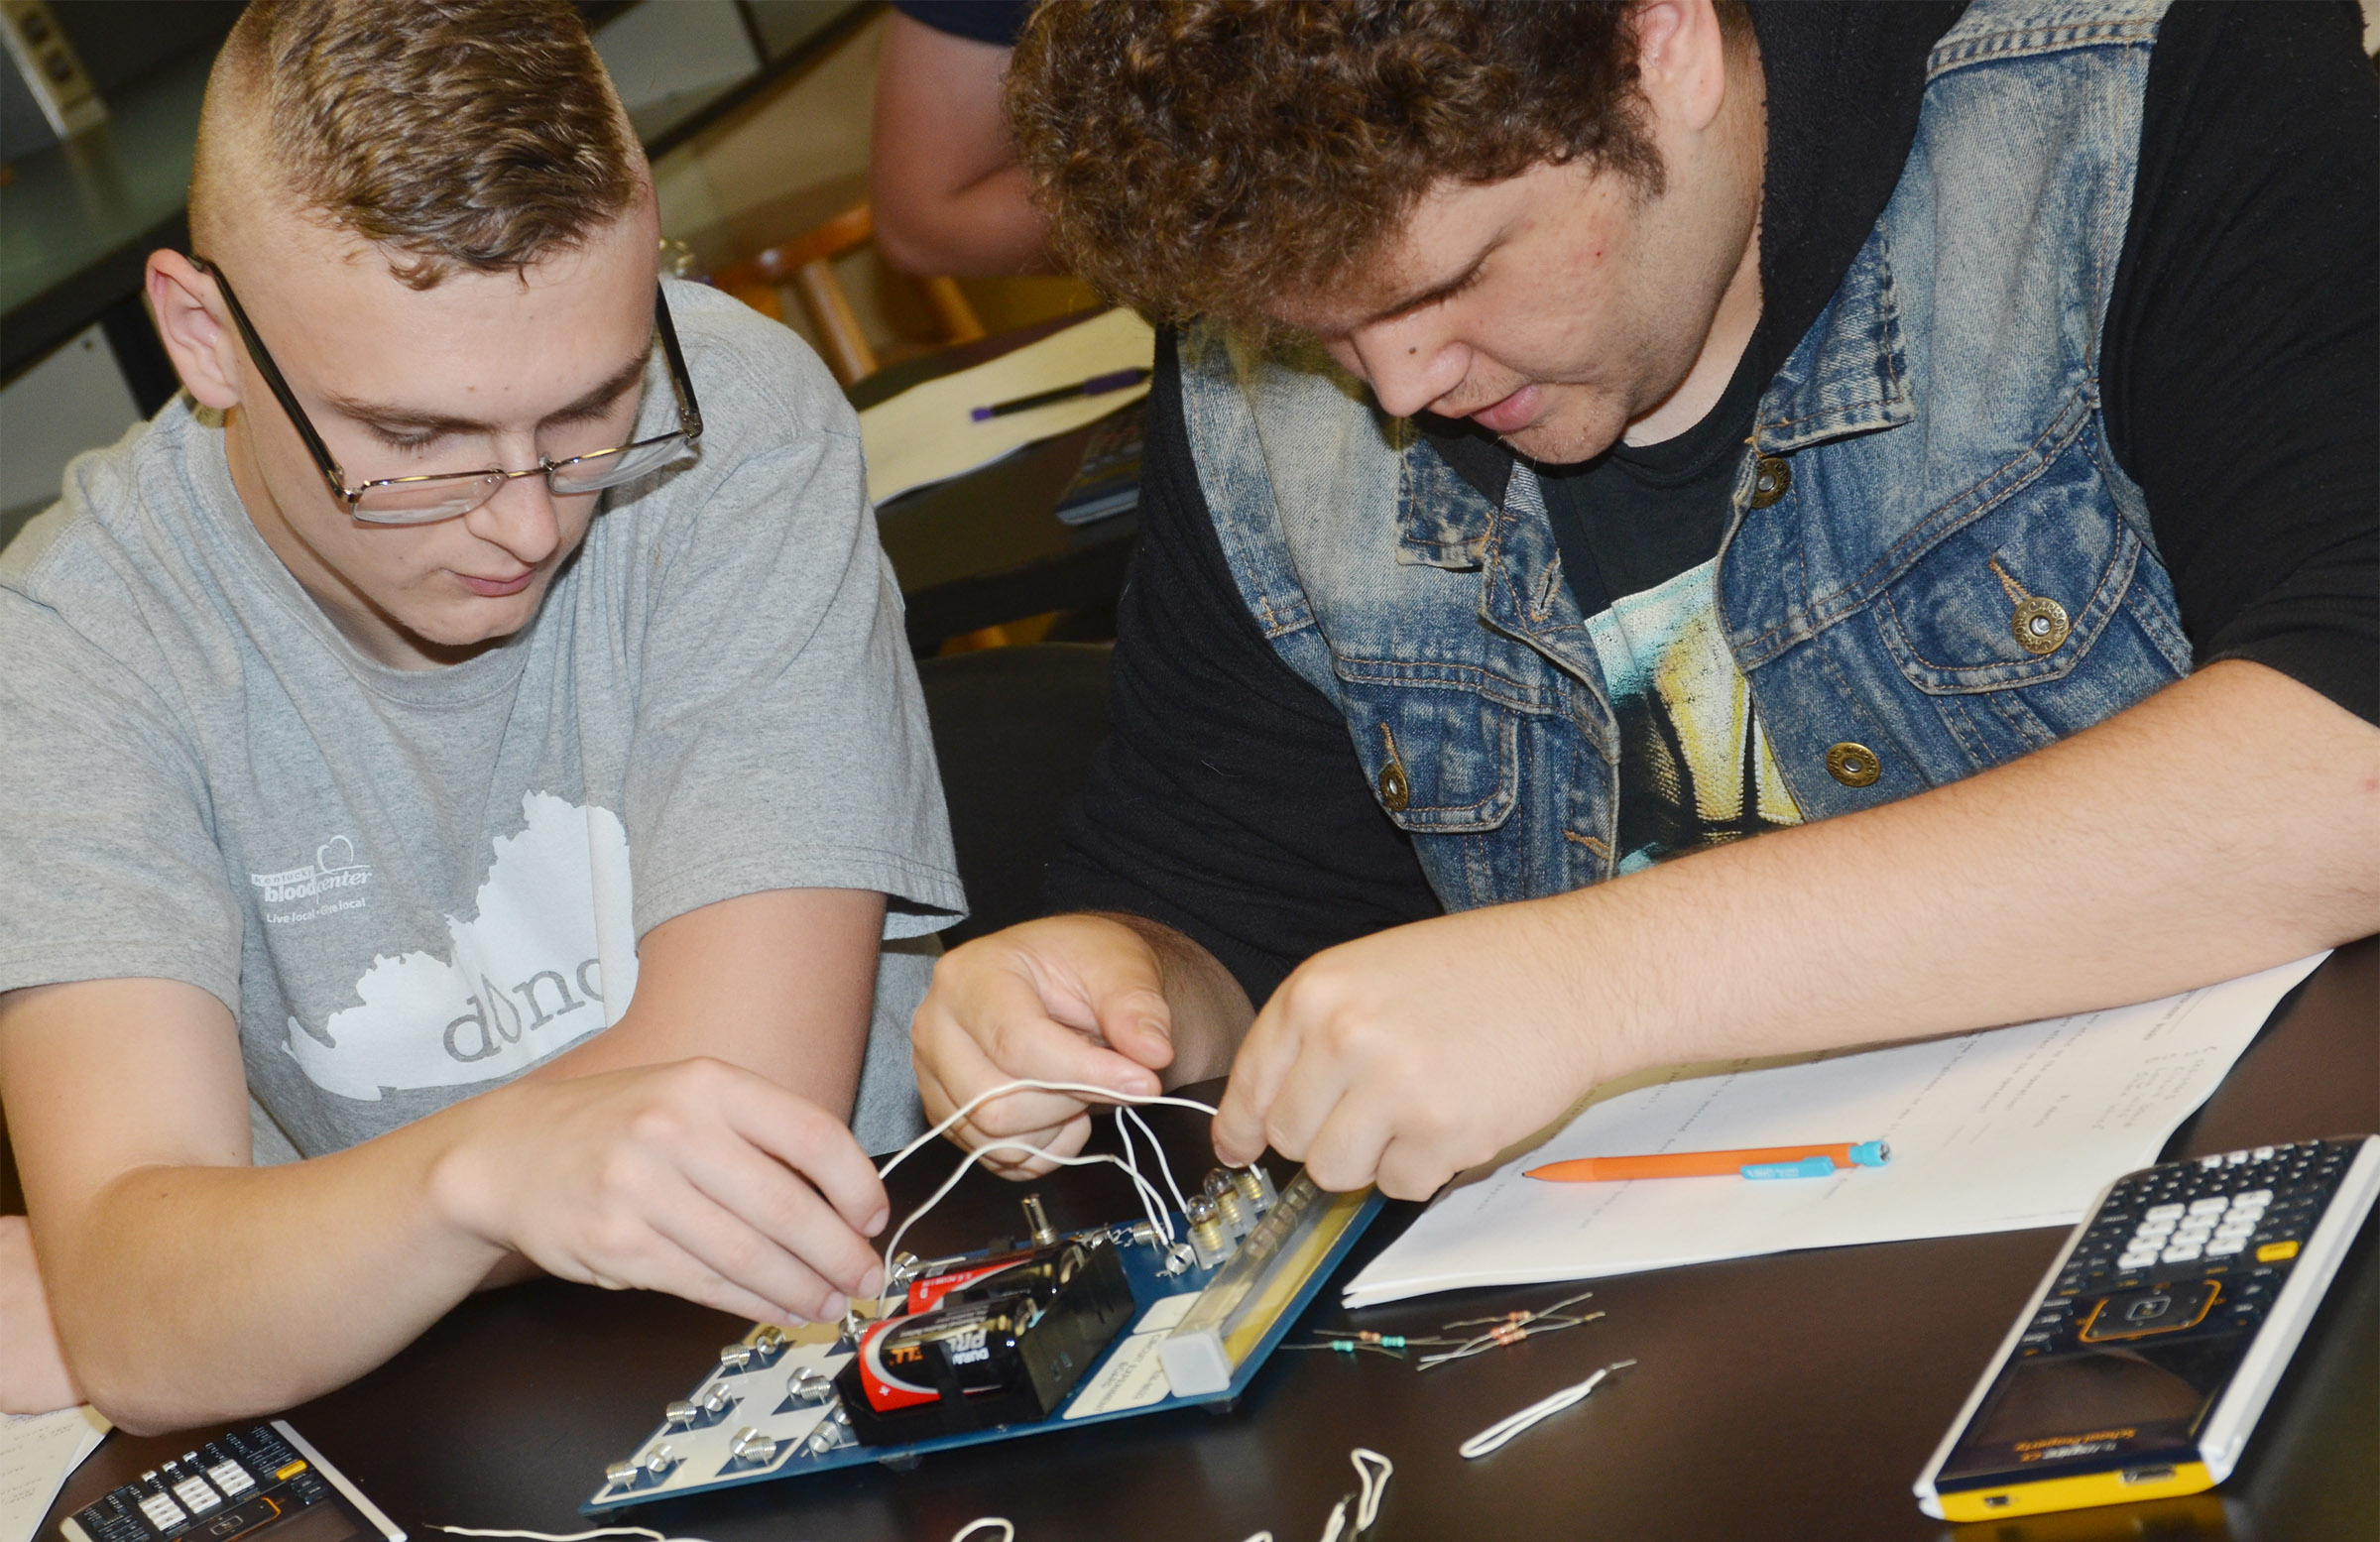 CHS seniors Ben Rafferty, at left, and Dalton Ballentine work together to complete their circuit.